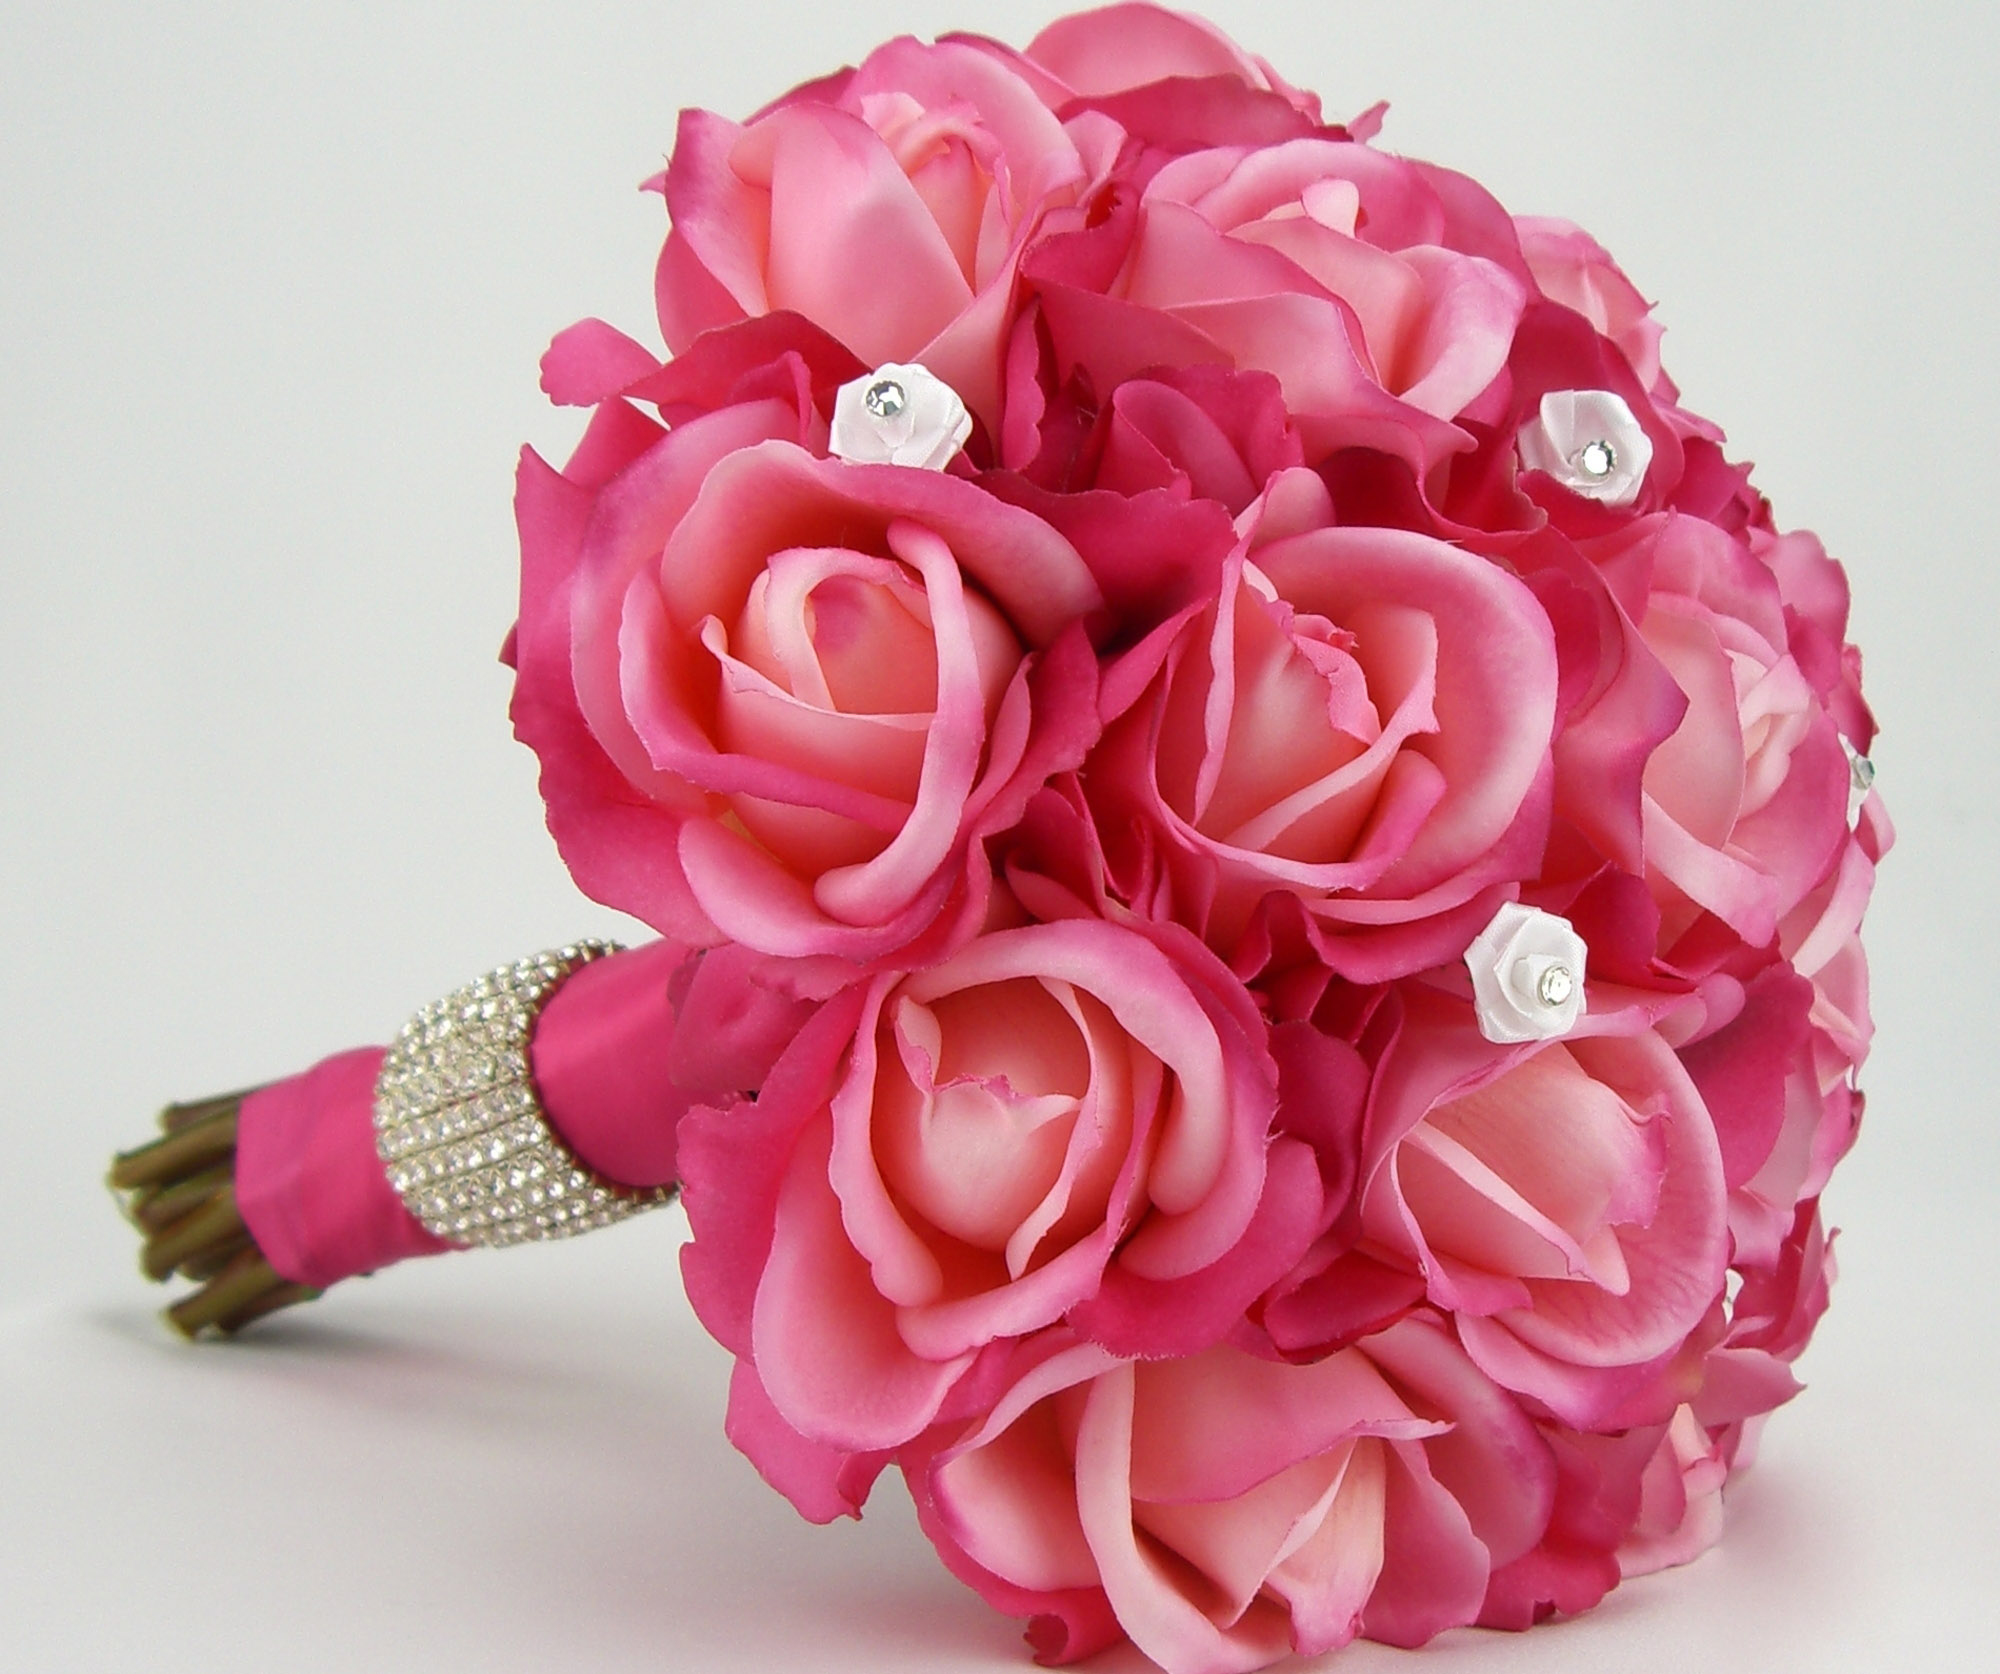 Images Of Flowers, Pink Roses Bouquet 2857.23 Kb